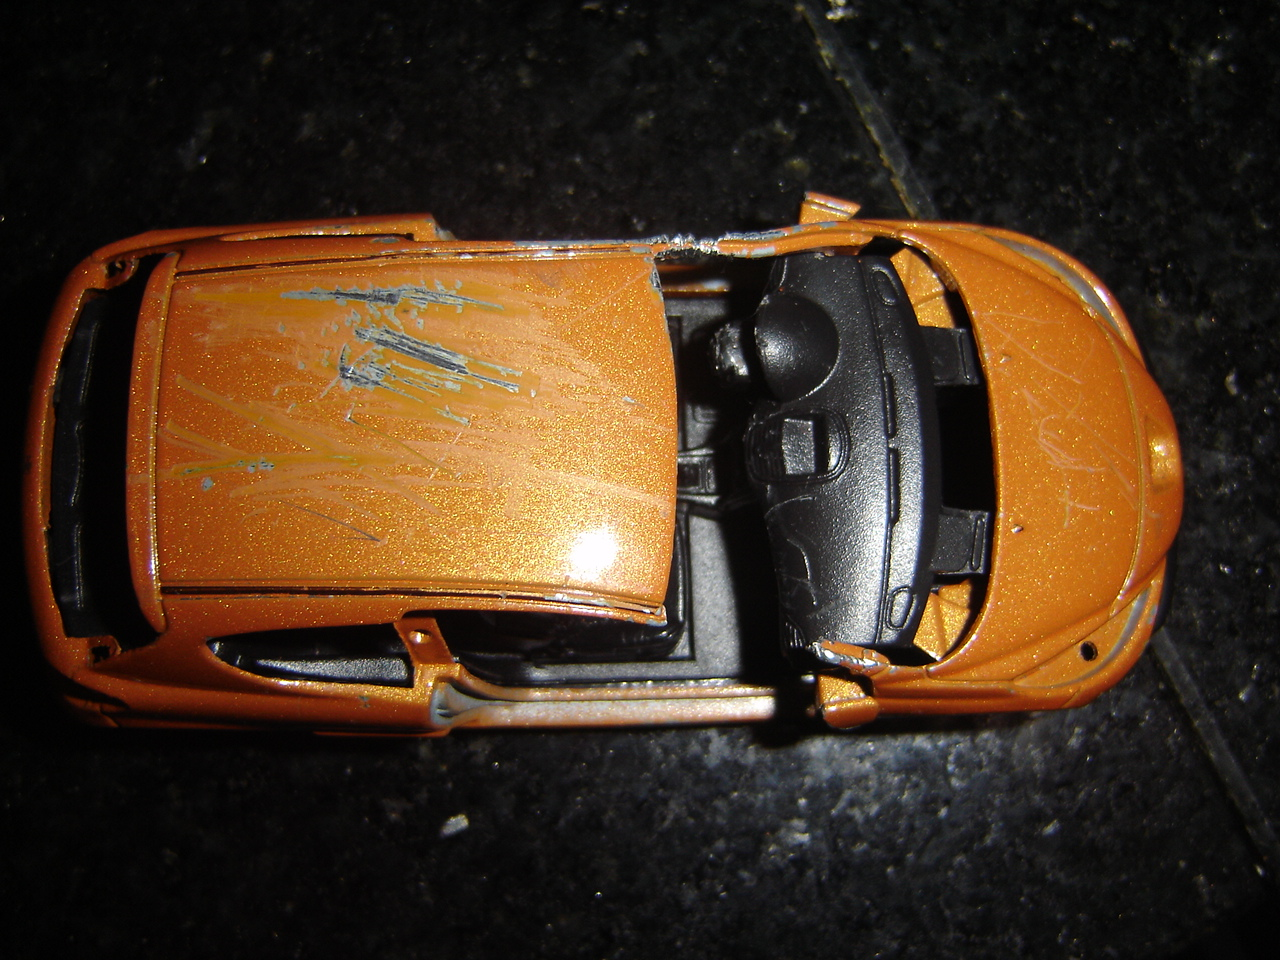 Toy Car Crash Destroying A